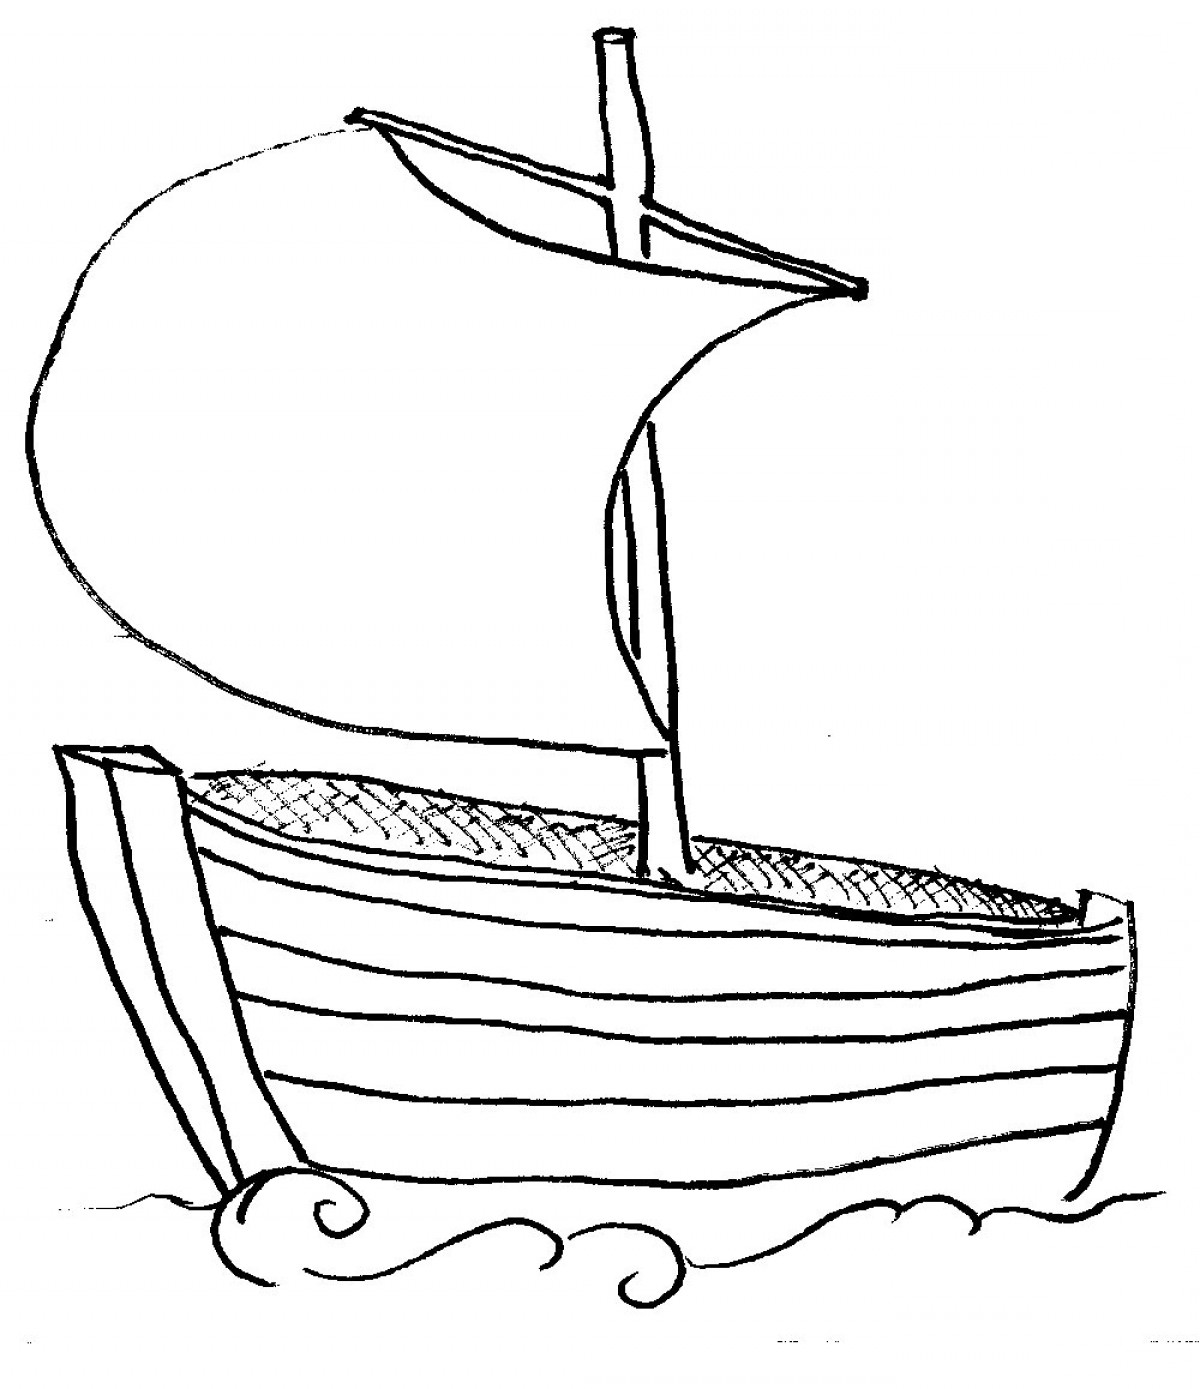 hight resolution of boat black and white exclusive ship clip art black and white graphic clipartidy